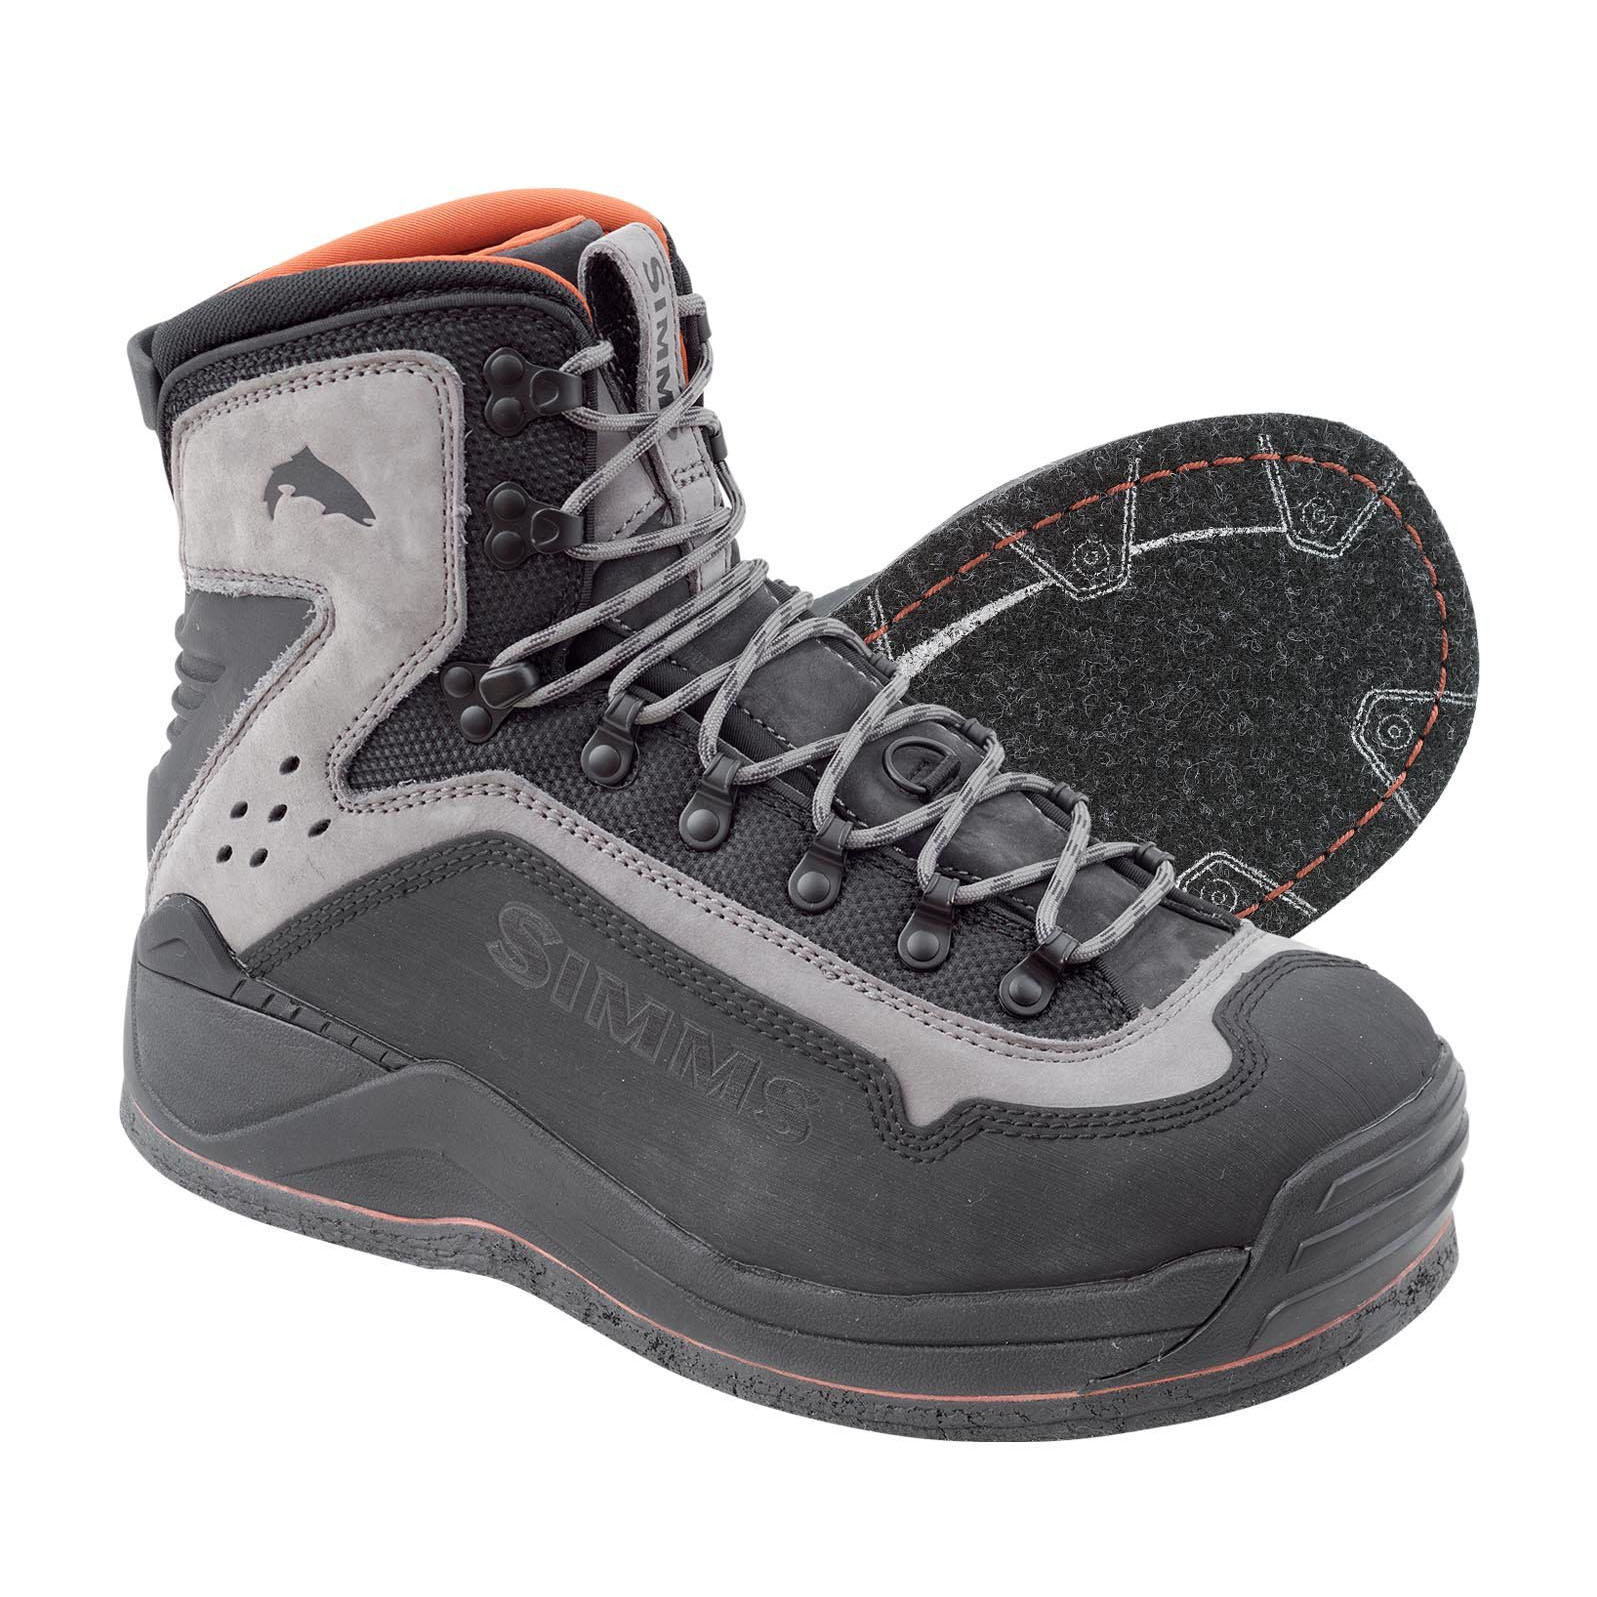 G3 GUIDE™ FELT-SOLE WADING BOOT